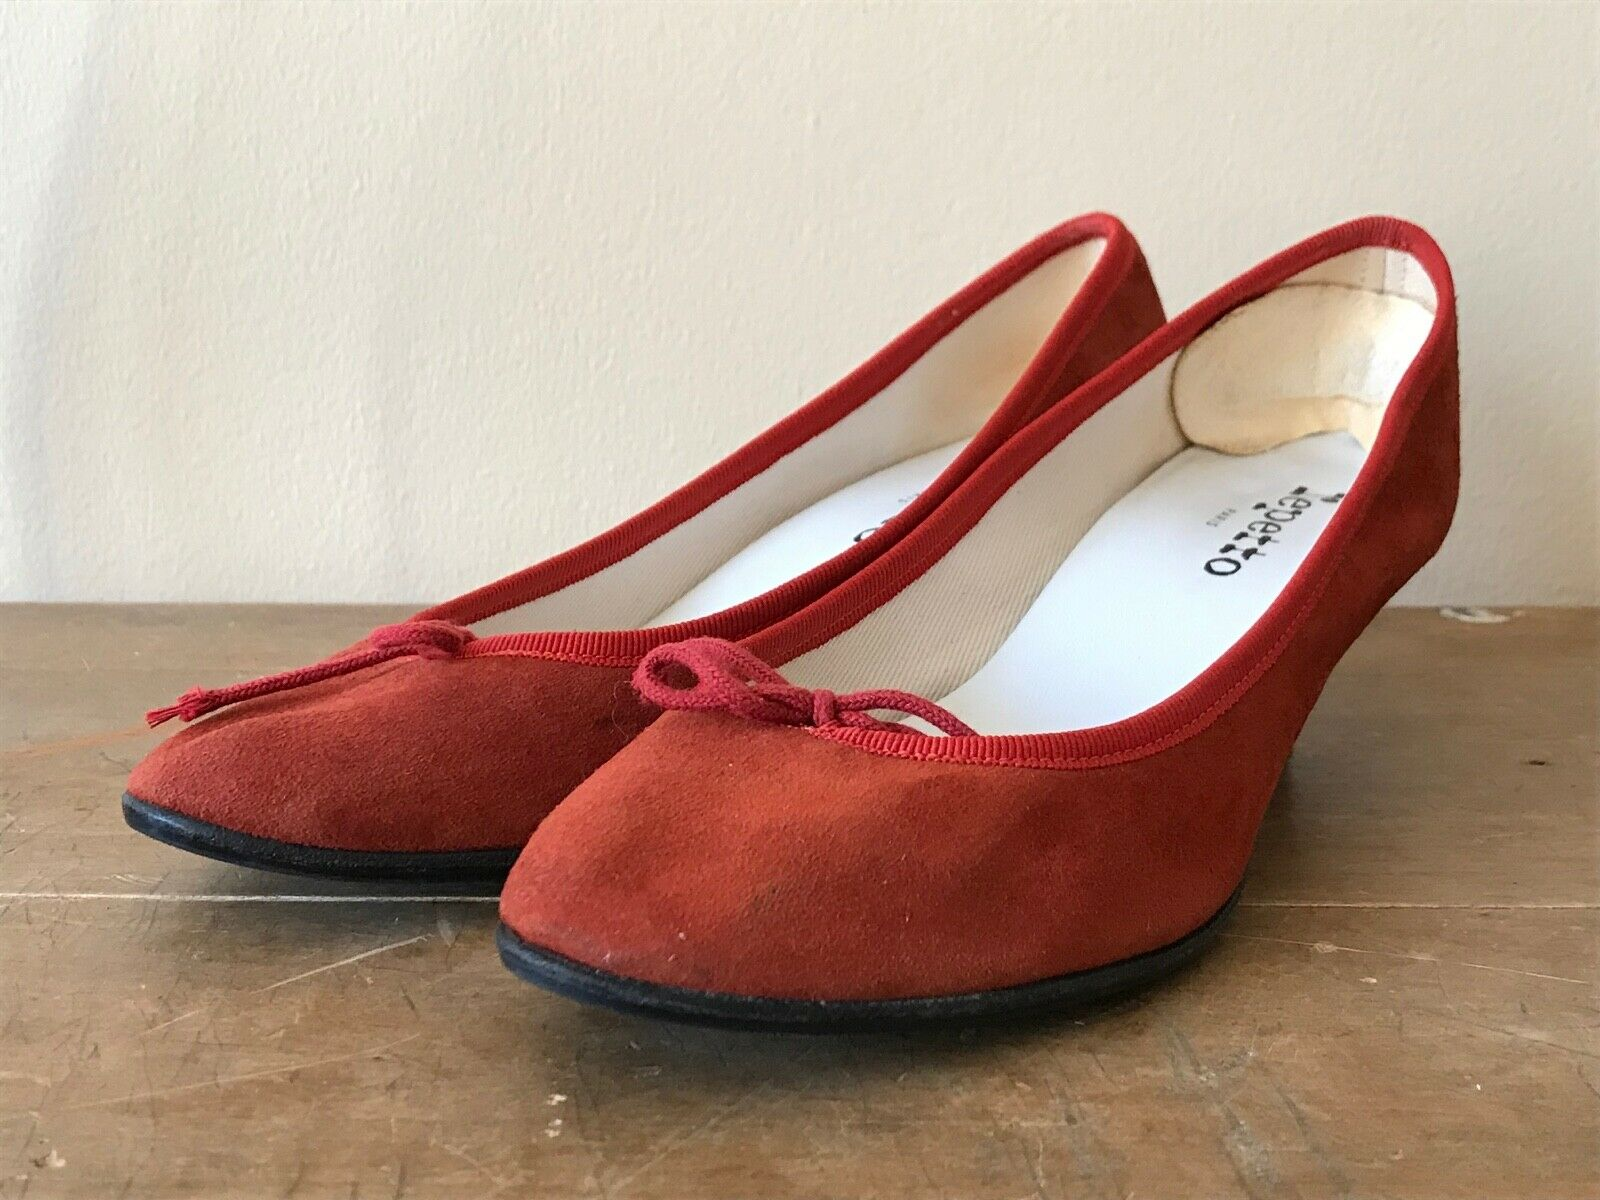 9da0080bfab Repetto Shimmer Red Kitten Heel Ballet shoes 39 US US US Size 7.5 ...